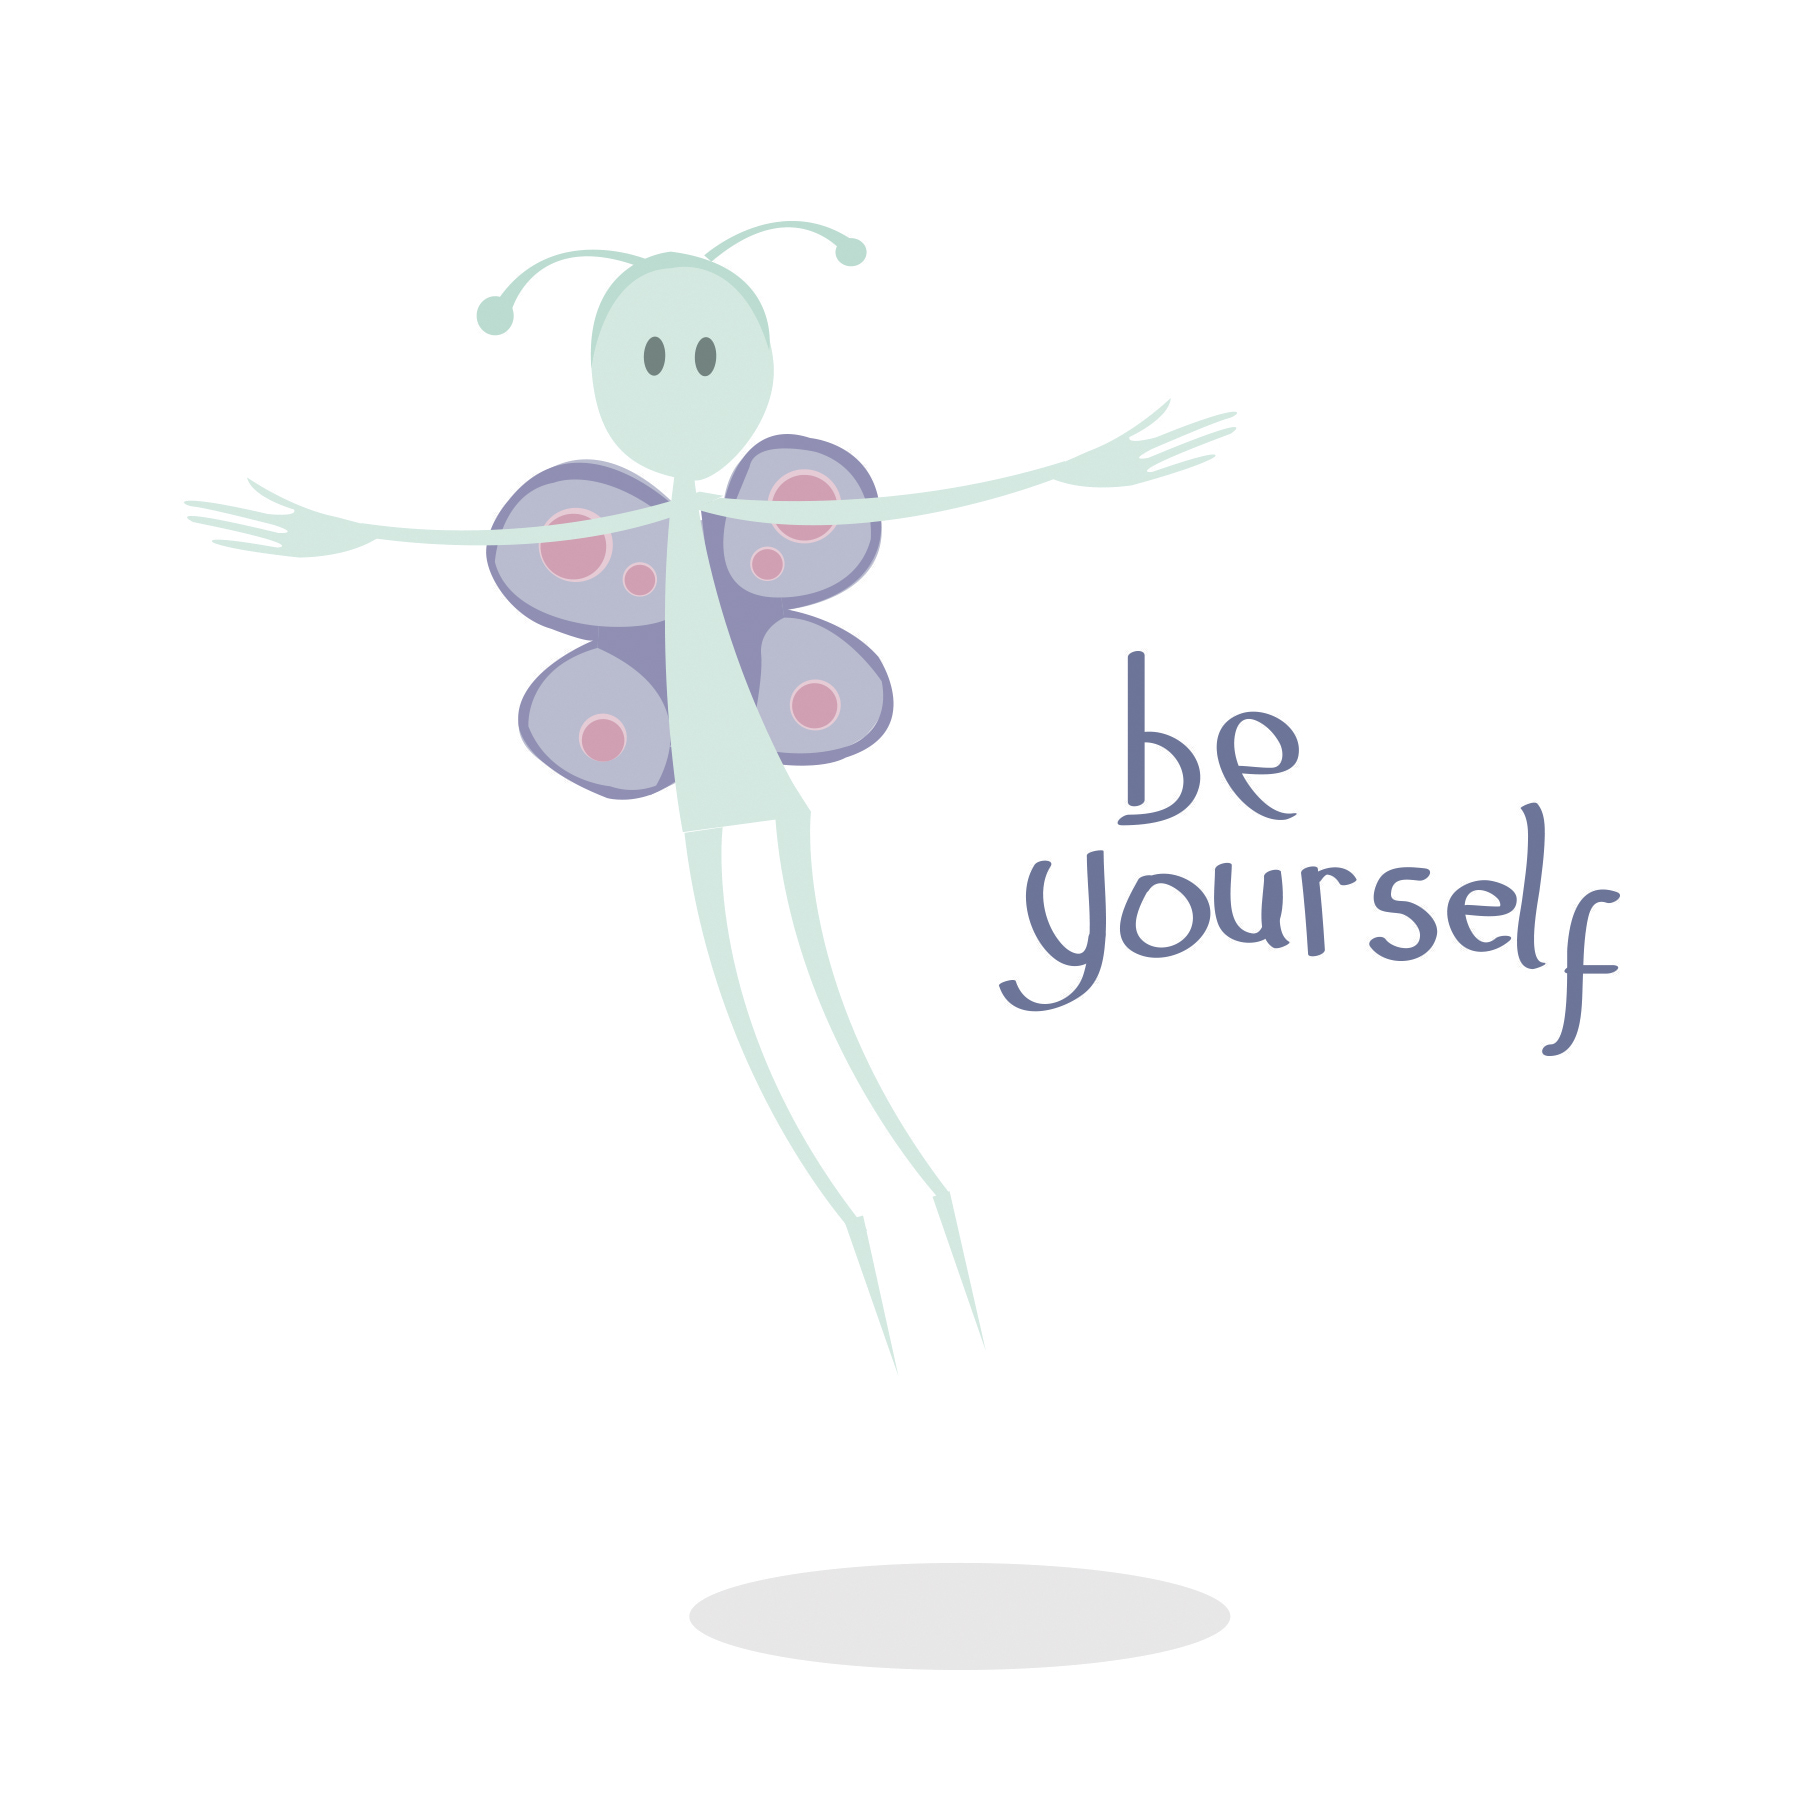 Be yourself illustrated greetings card wake up screaming an be yourself illustrated greetings card matt witt illustration kristyandbryce Image collections